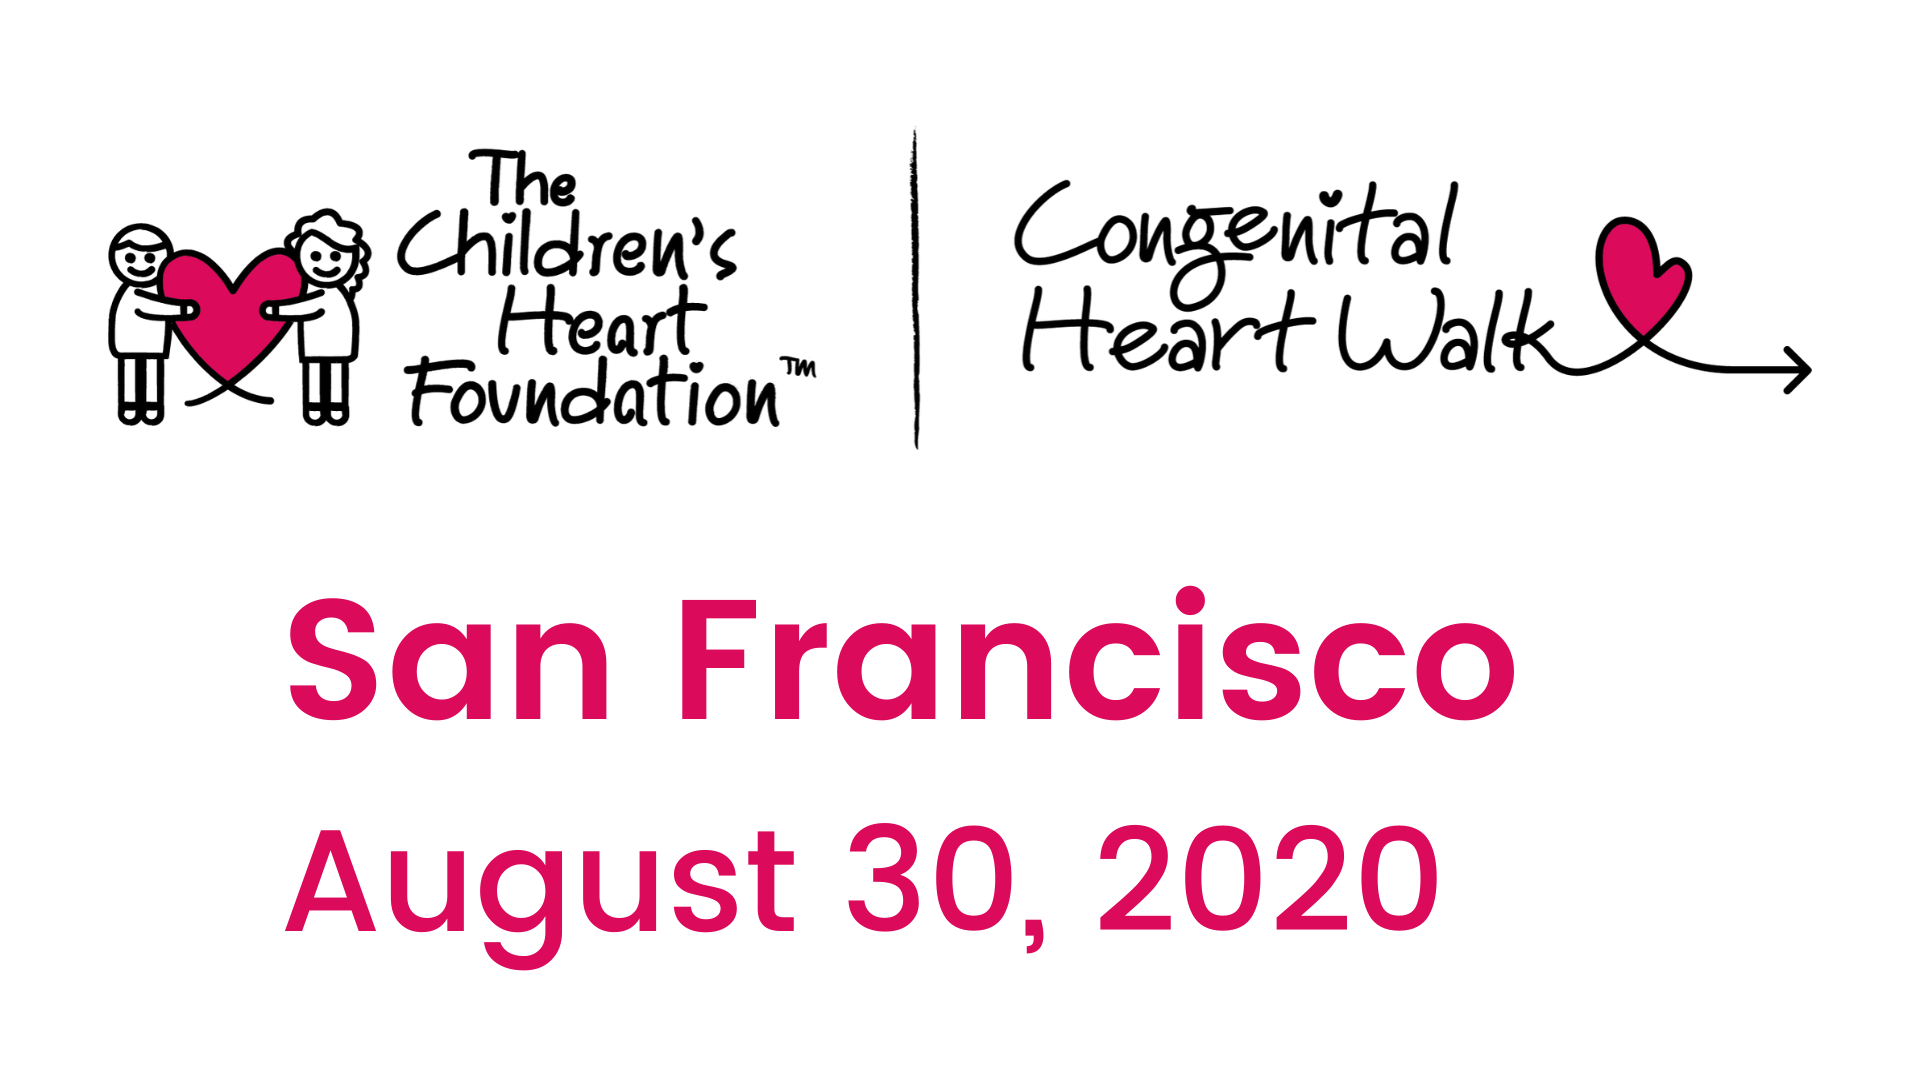 San Francisco Congenital Heart Walk